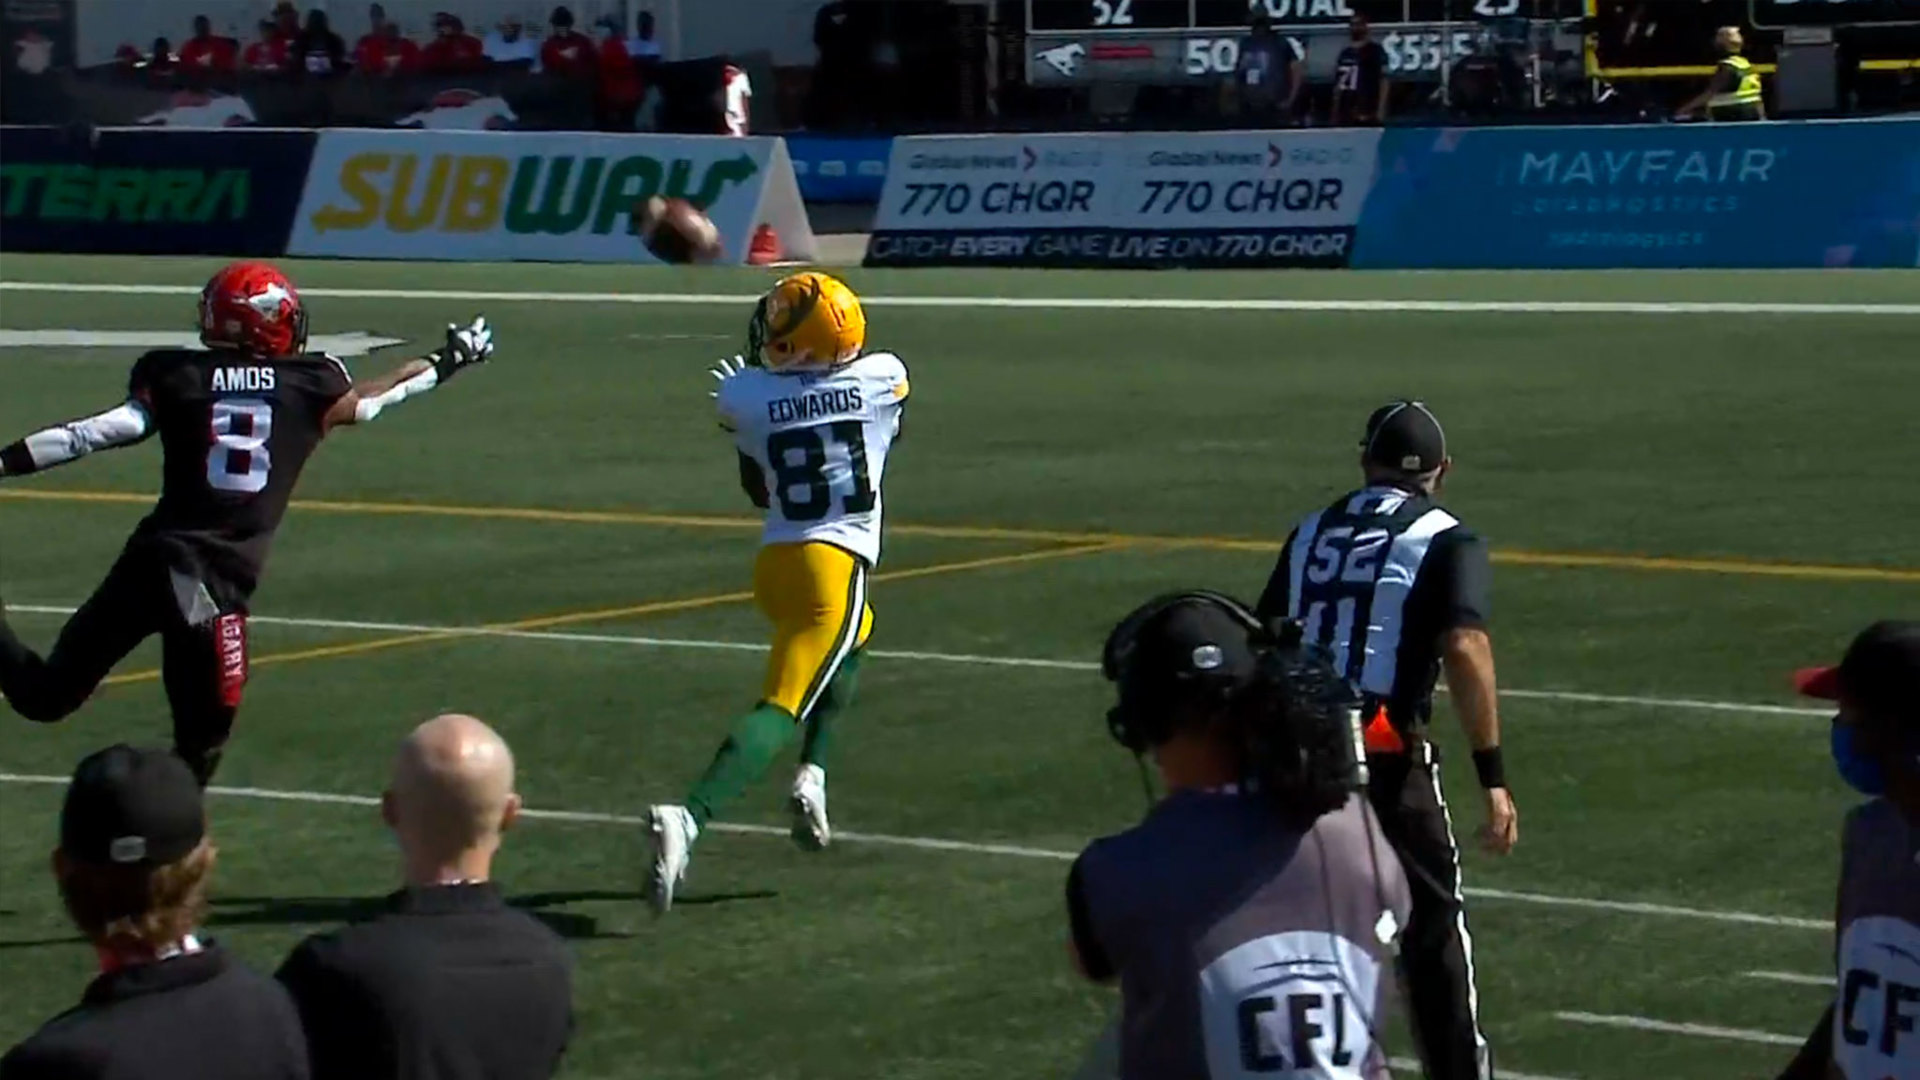 Harris finds Edwards for first CFL TD